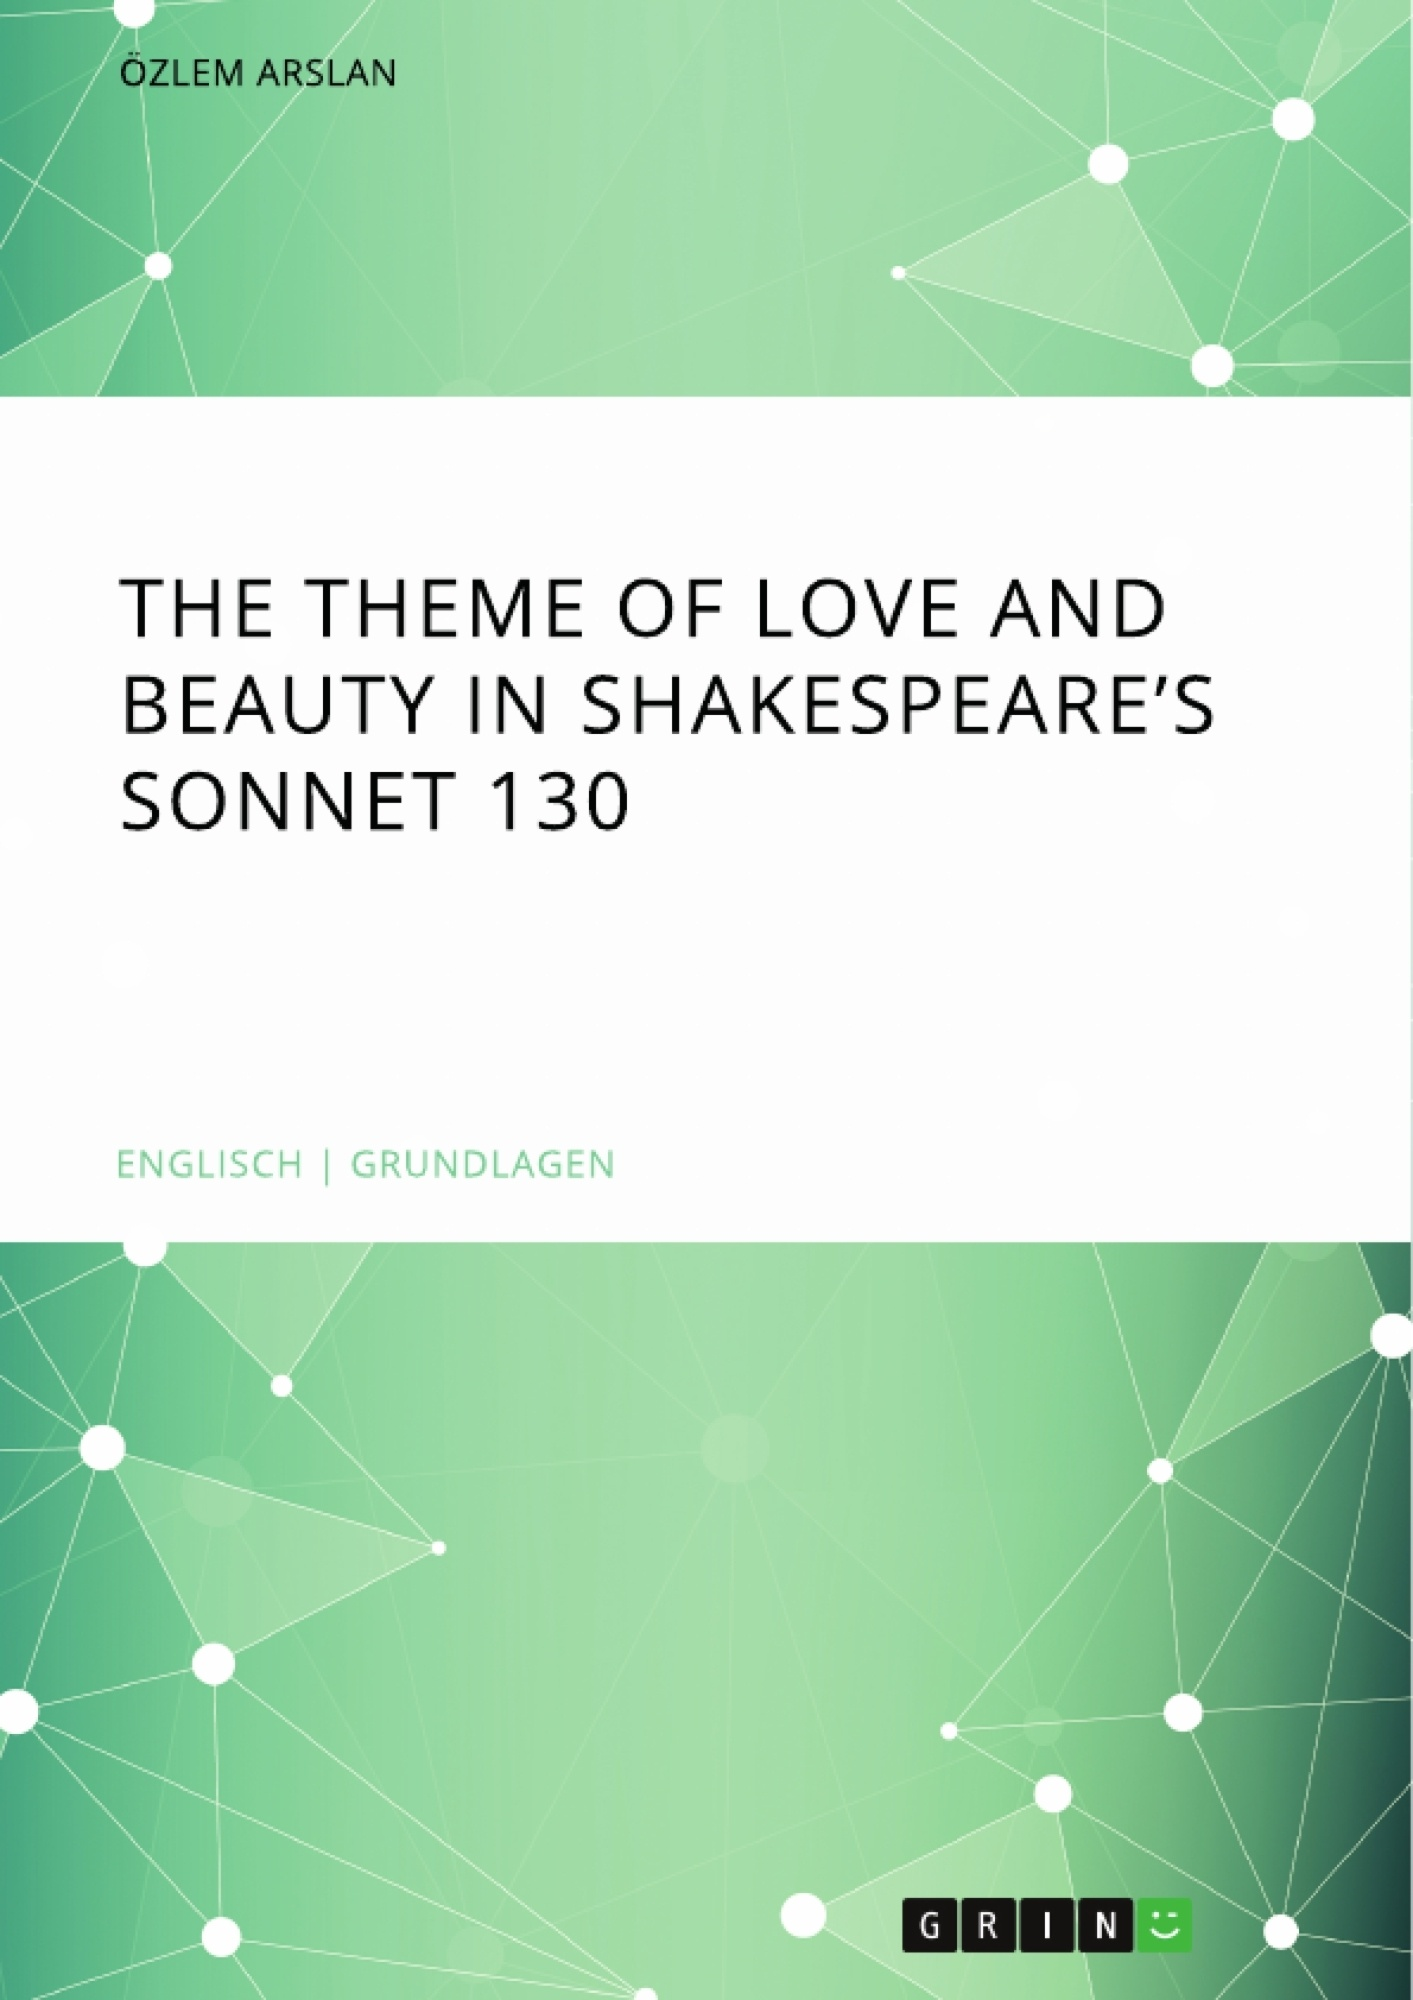 william shakespeare sonnet 130 analysis line by line